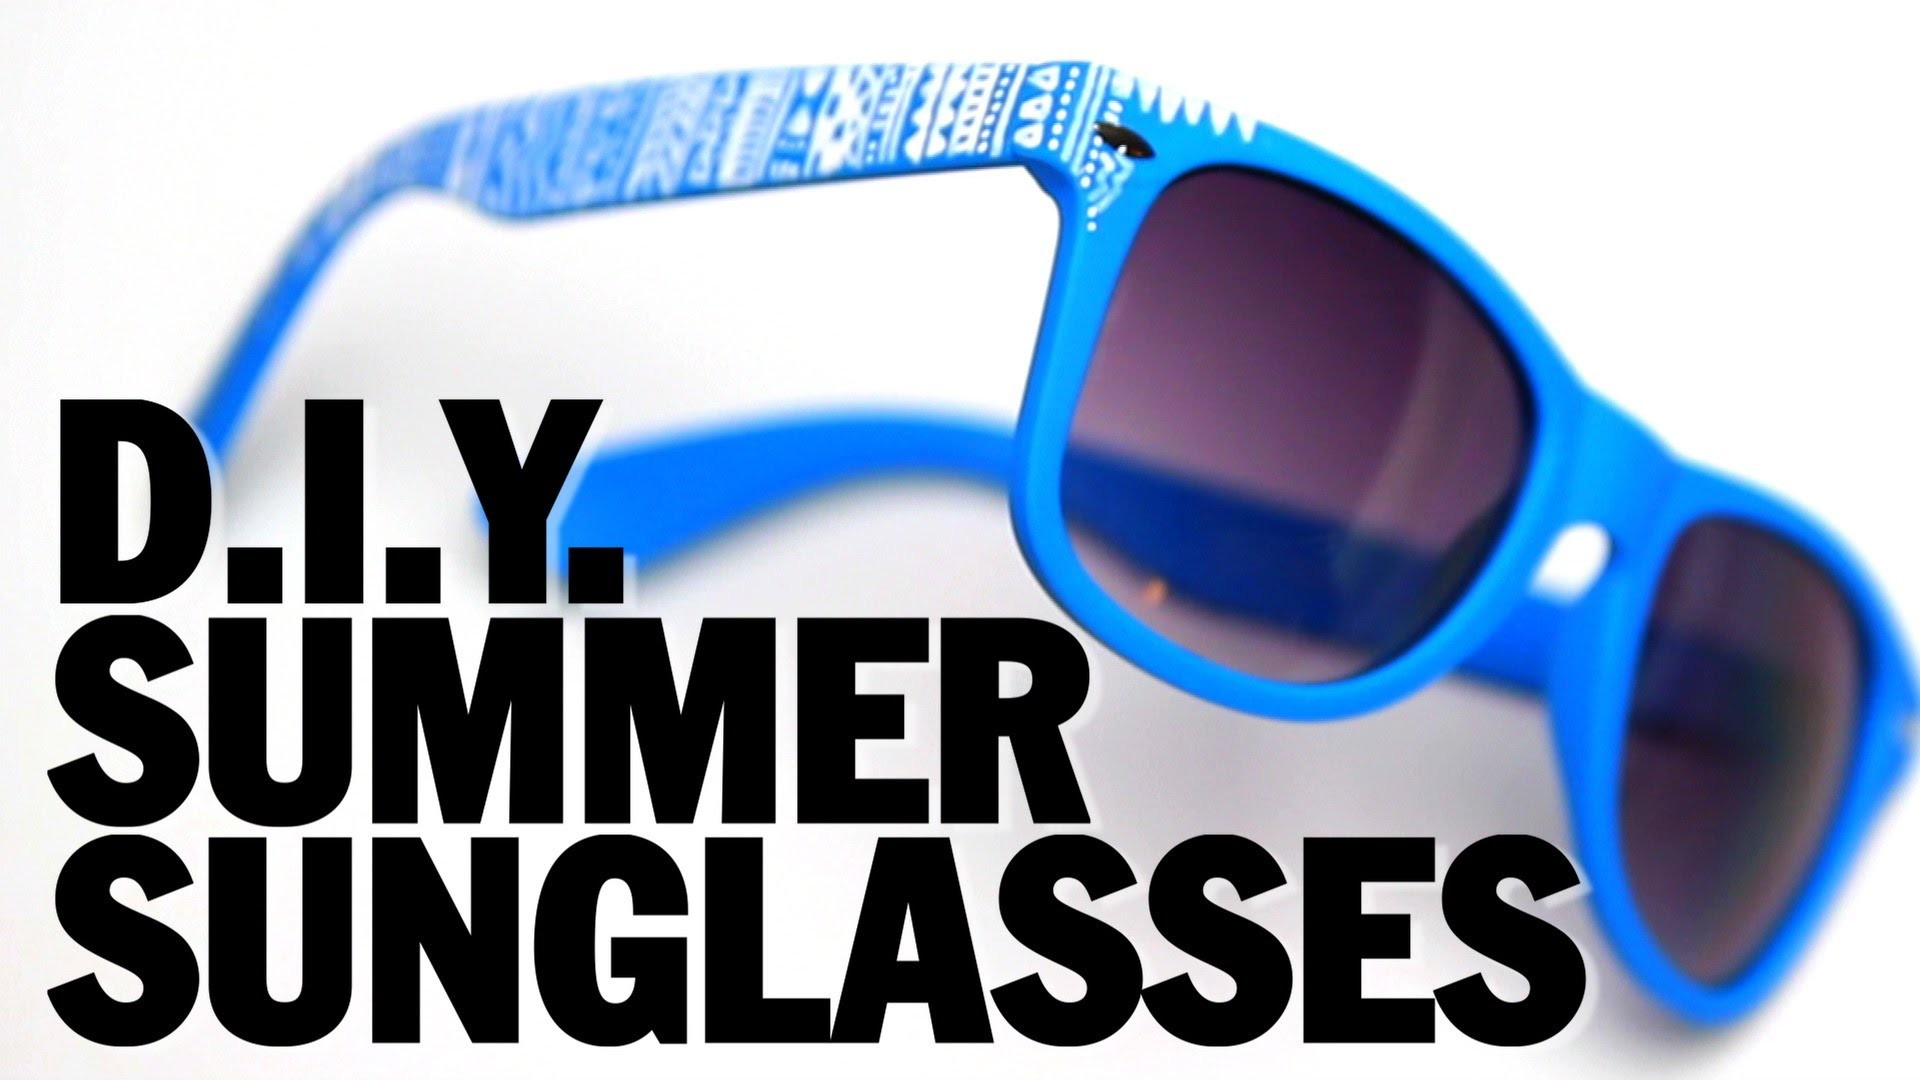 DIY SUMMER SUNGLASSES! - Threadbanger